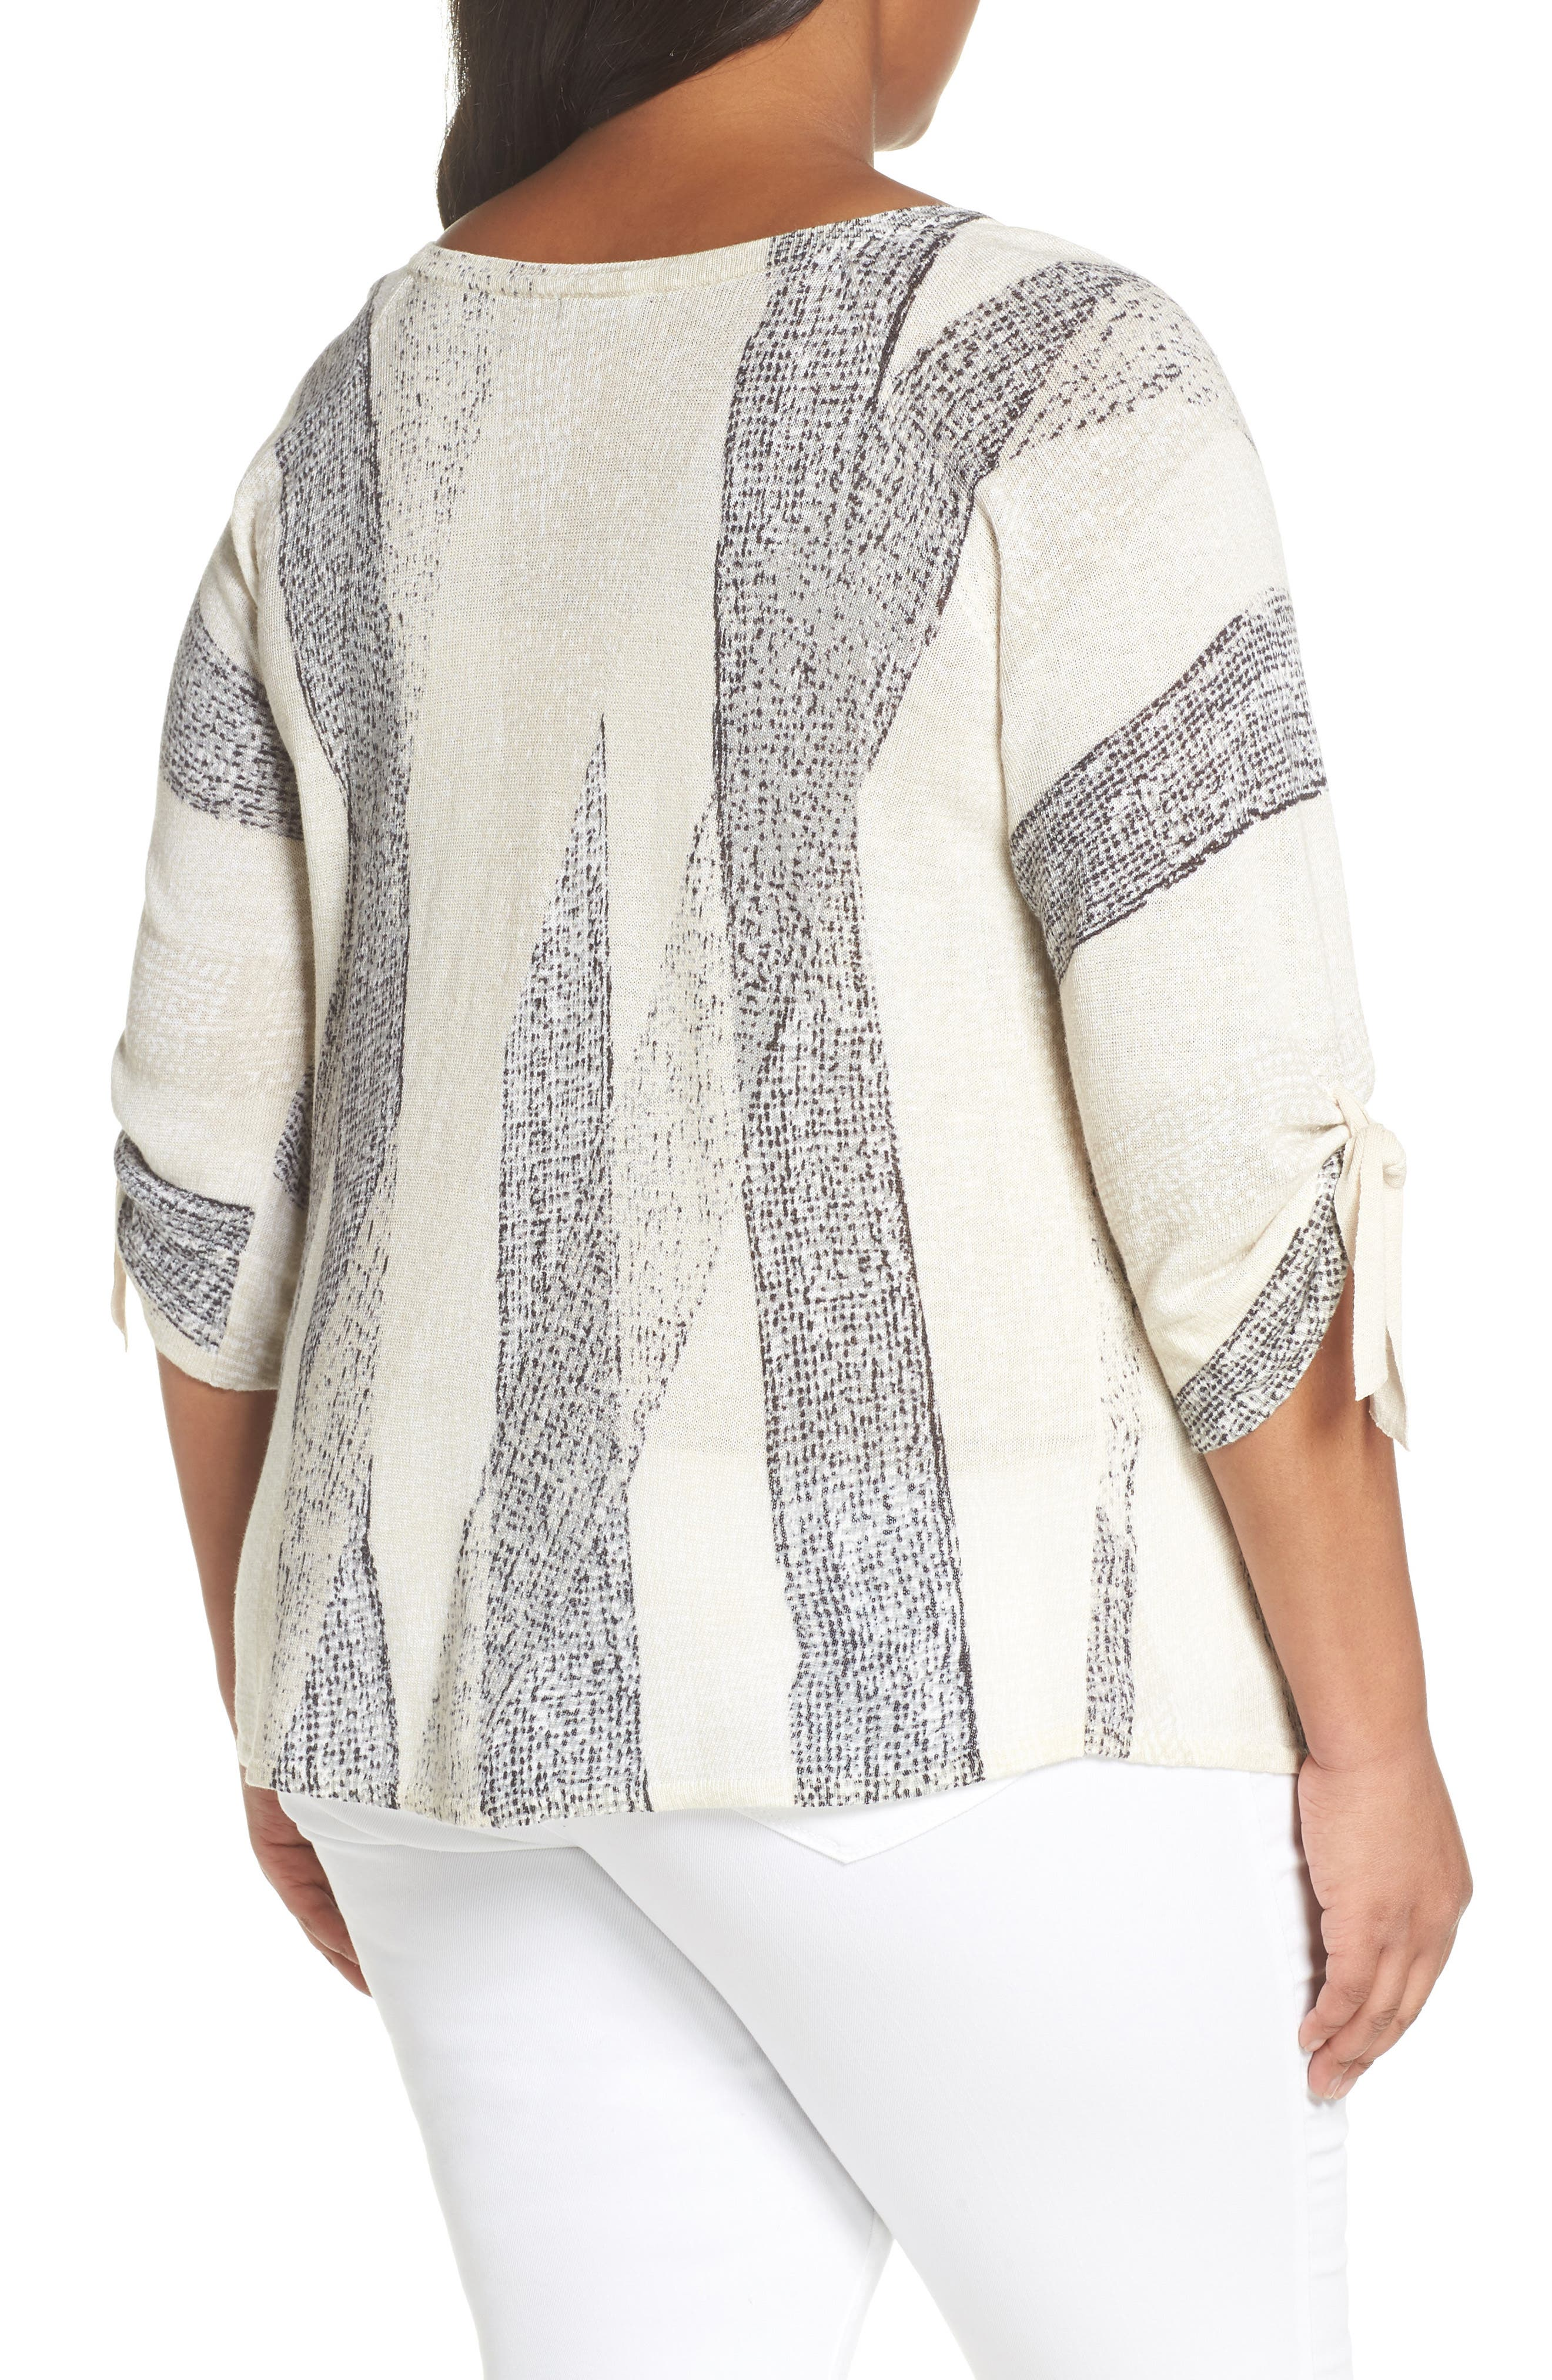 Alternate Image 2  - NIC+ZOE Tiled Ties Linen Blend Top (Plus Size)